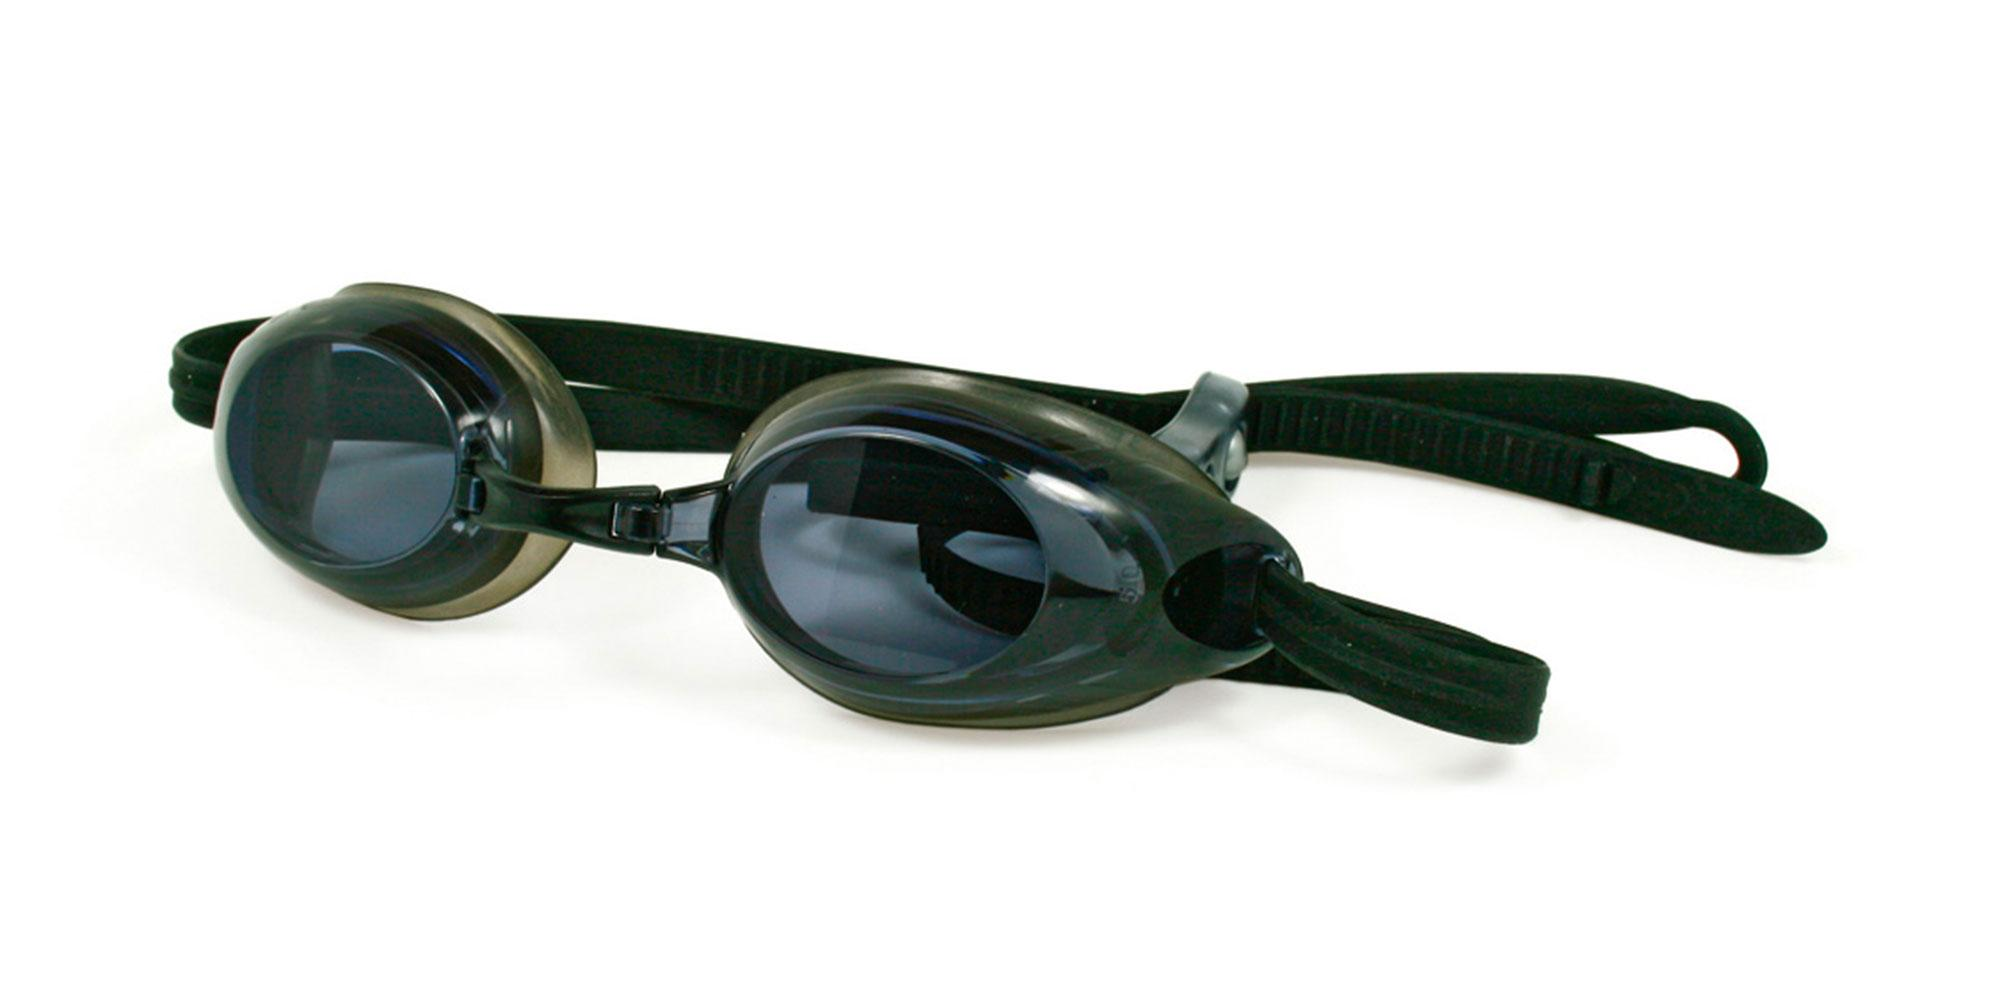 Black Aquasee Competition Accessories, Sports Eyewear